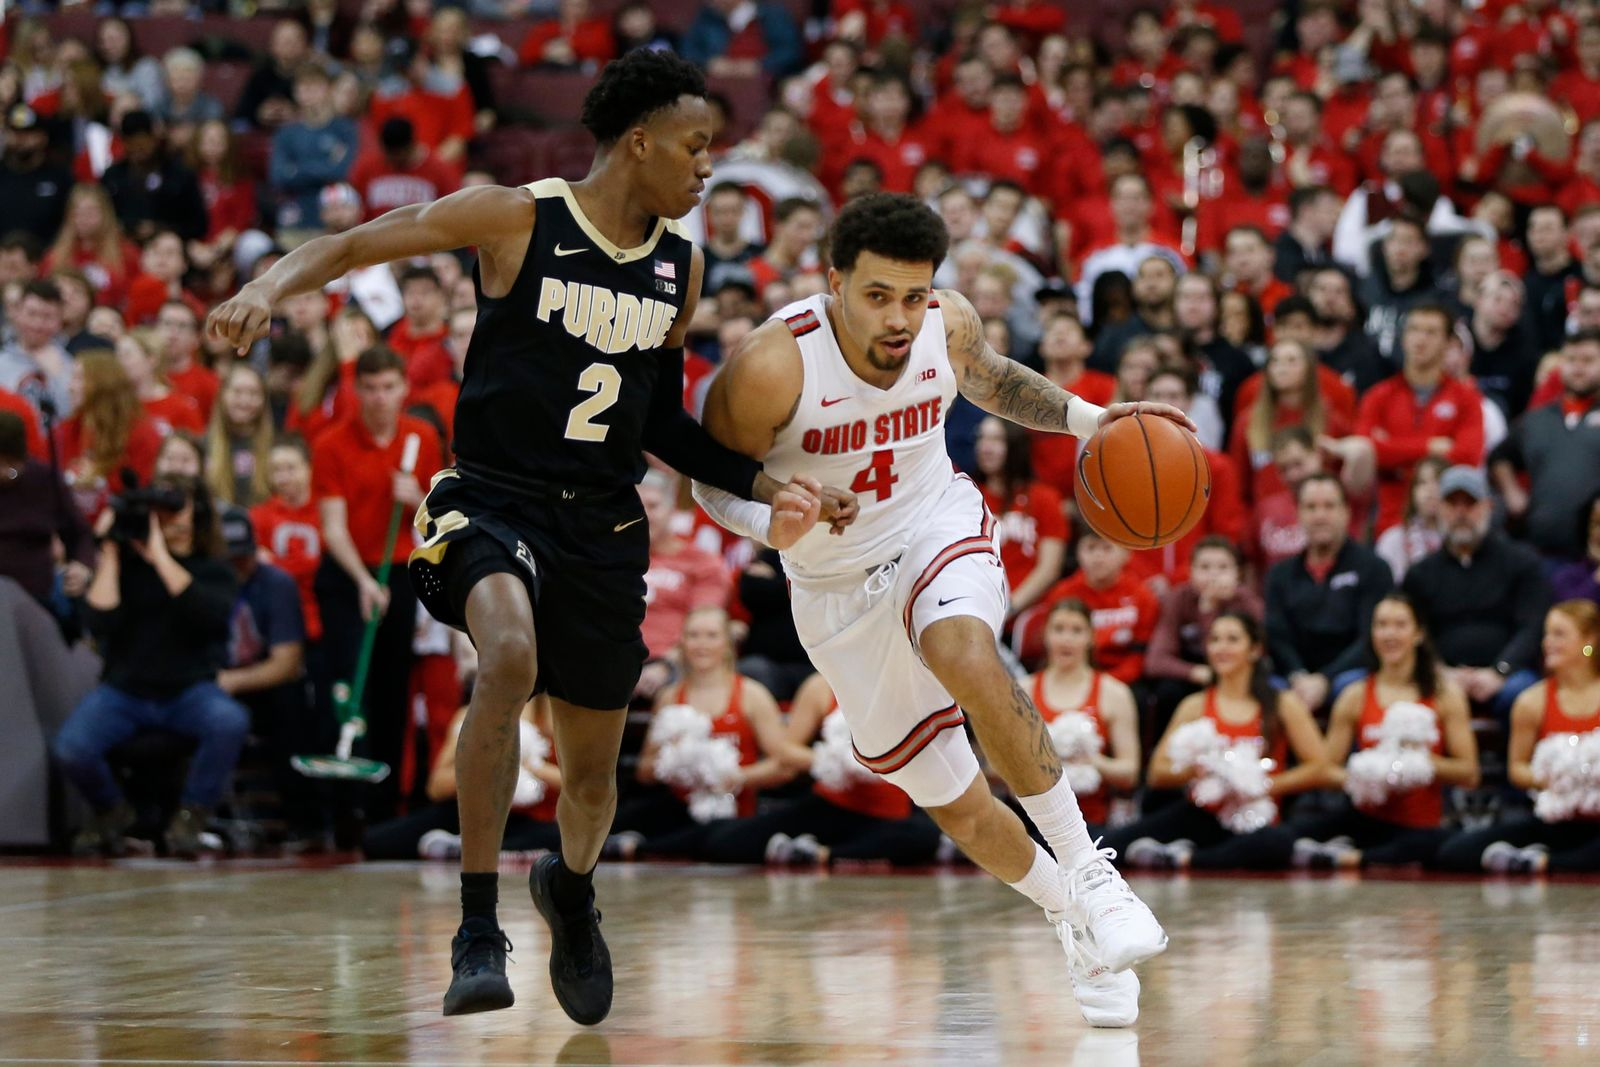 Ohio State's Duane Washington, right, brings the ball up court against Purdue's Eric Hunter during the second half of an NCAA college basketball game Saturday, Feb. 15, 2020, in Columbus, Ohio. Ohio State beat Purdue 68-52. (AP Photo/Jay LaPrete)